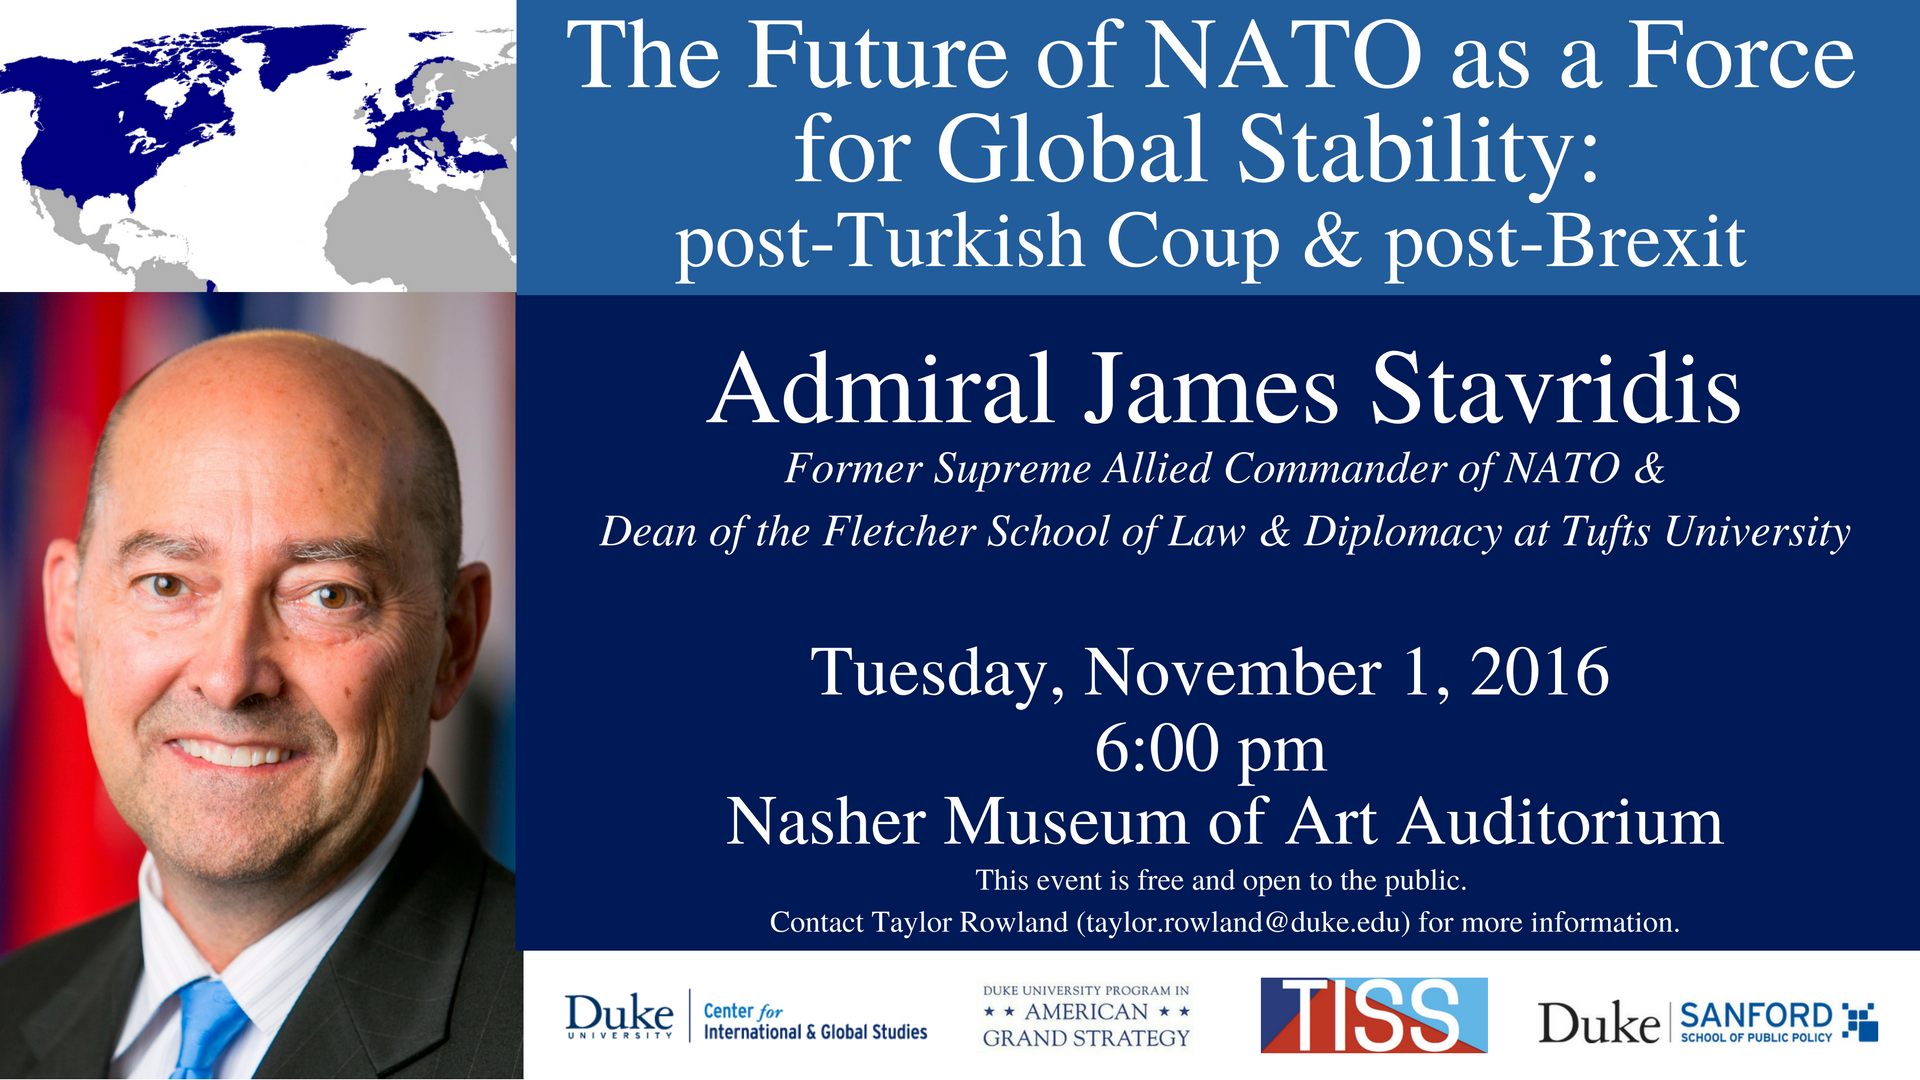 The Future of NATO as a Force for Global Stability: Post-Turkish Coup & Post-Brexit